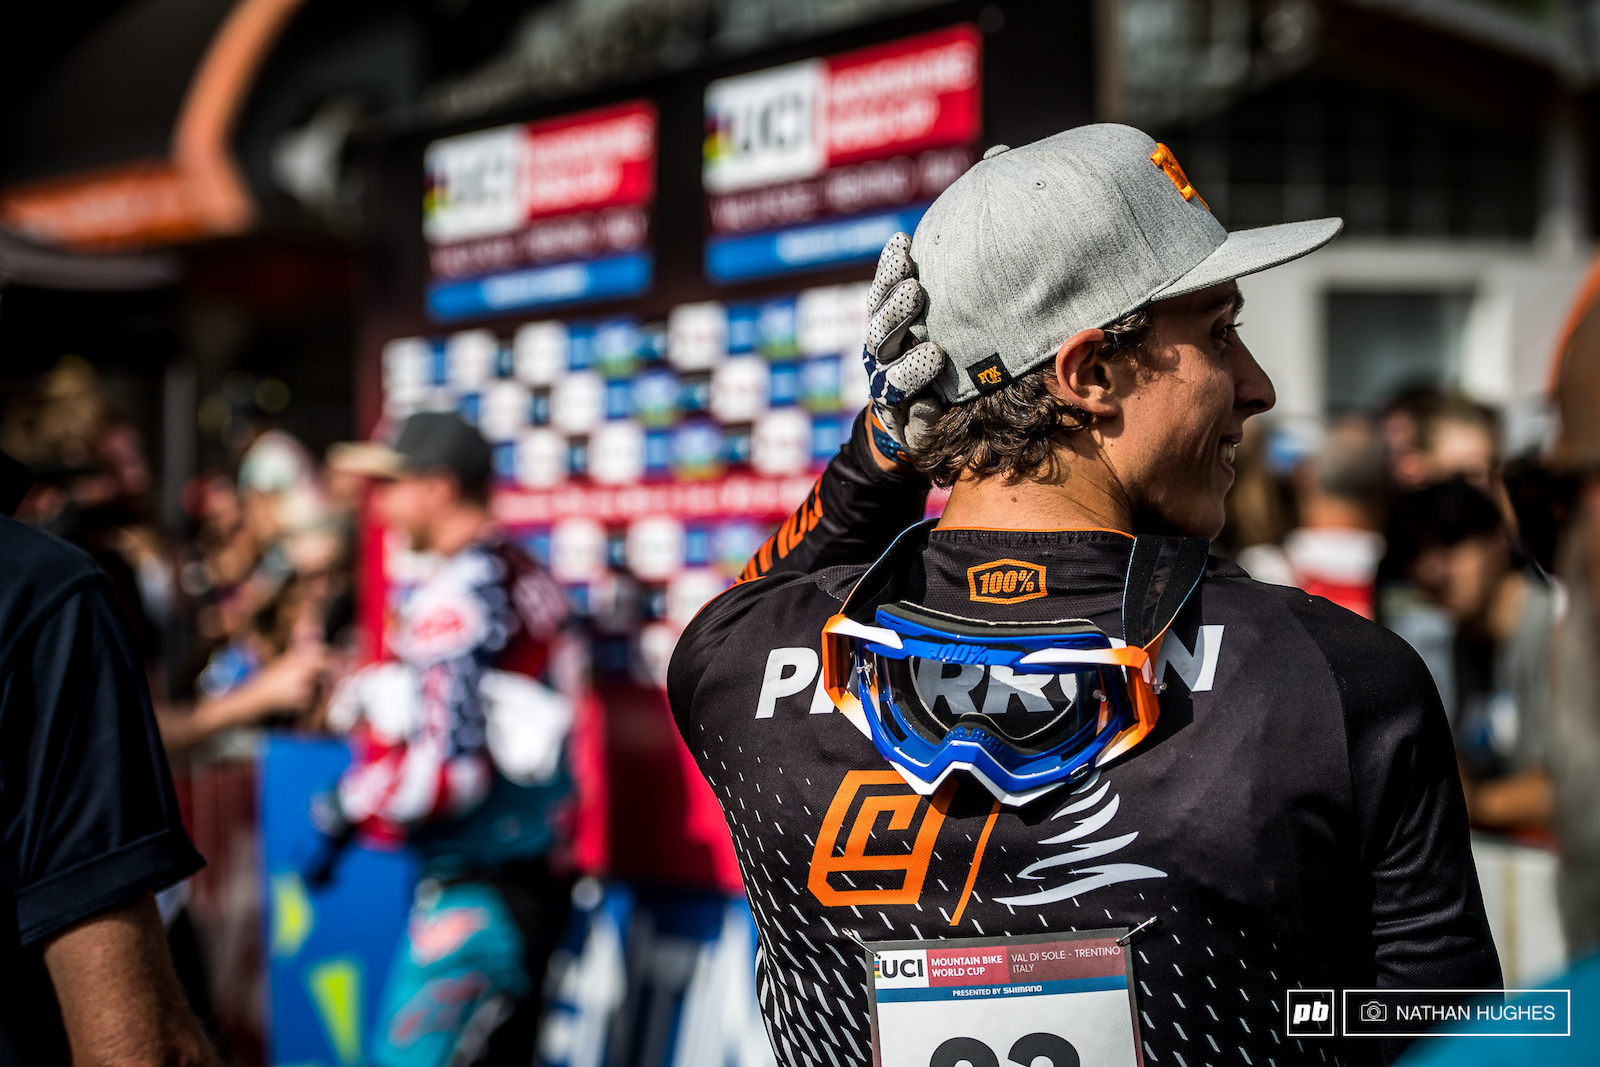 Pierron struggling to catch up with his accomplishments returning to the podium for only the second time in his career.